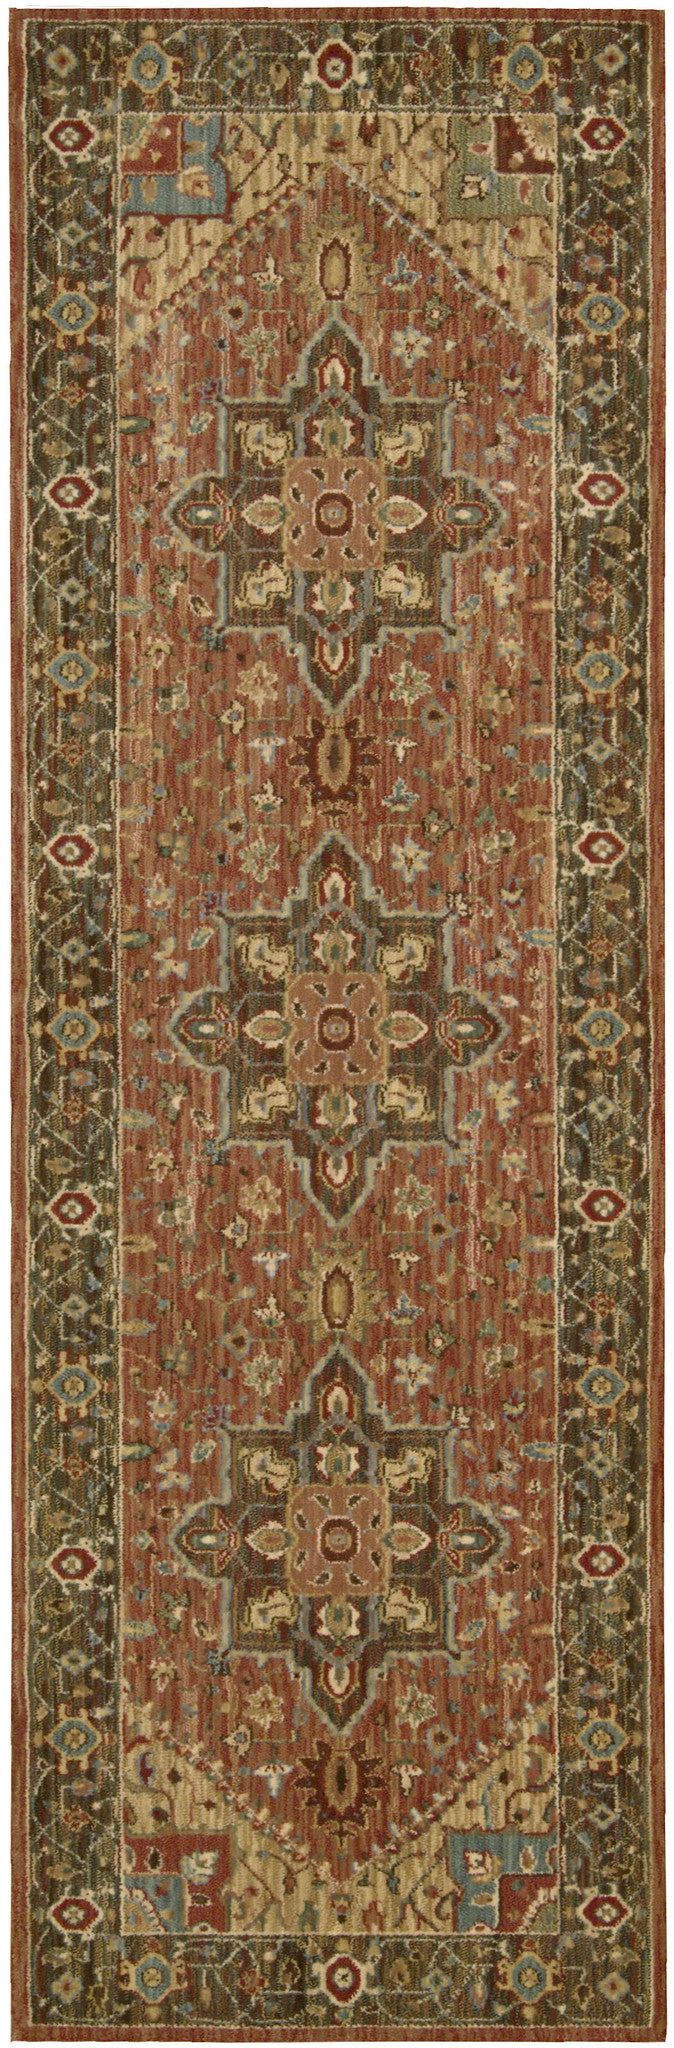 Nourison Living Treasures Rust Area Rug LI01 RUS